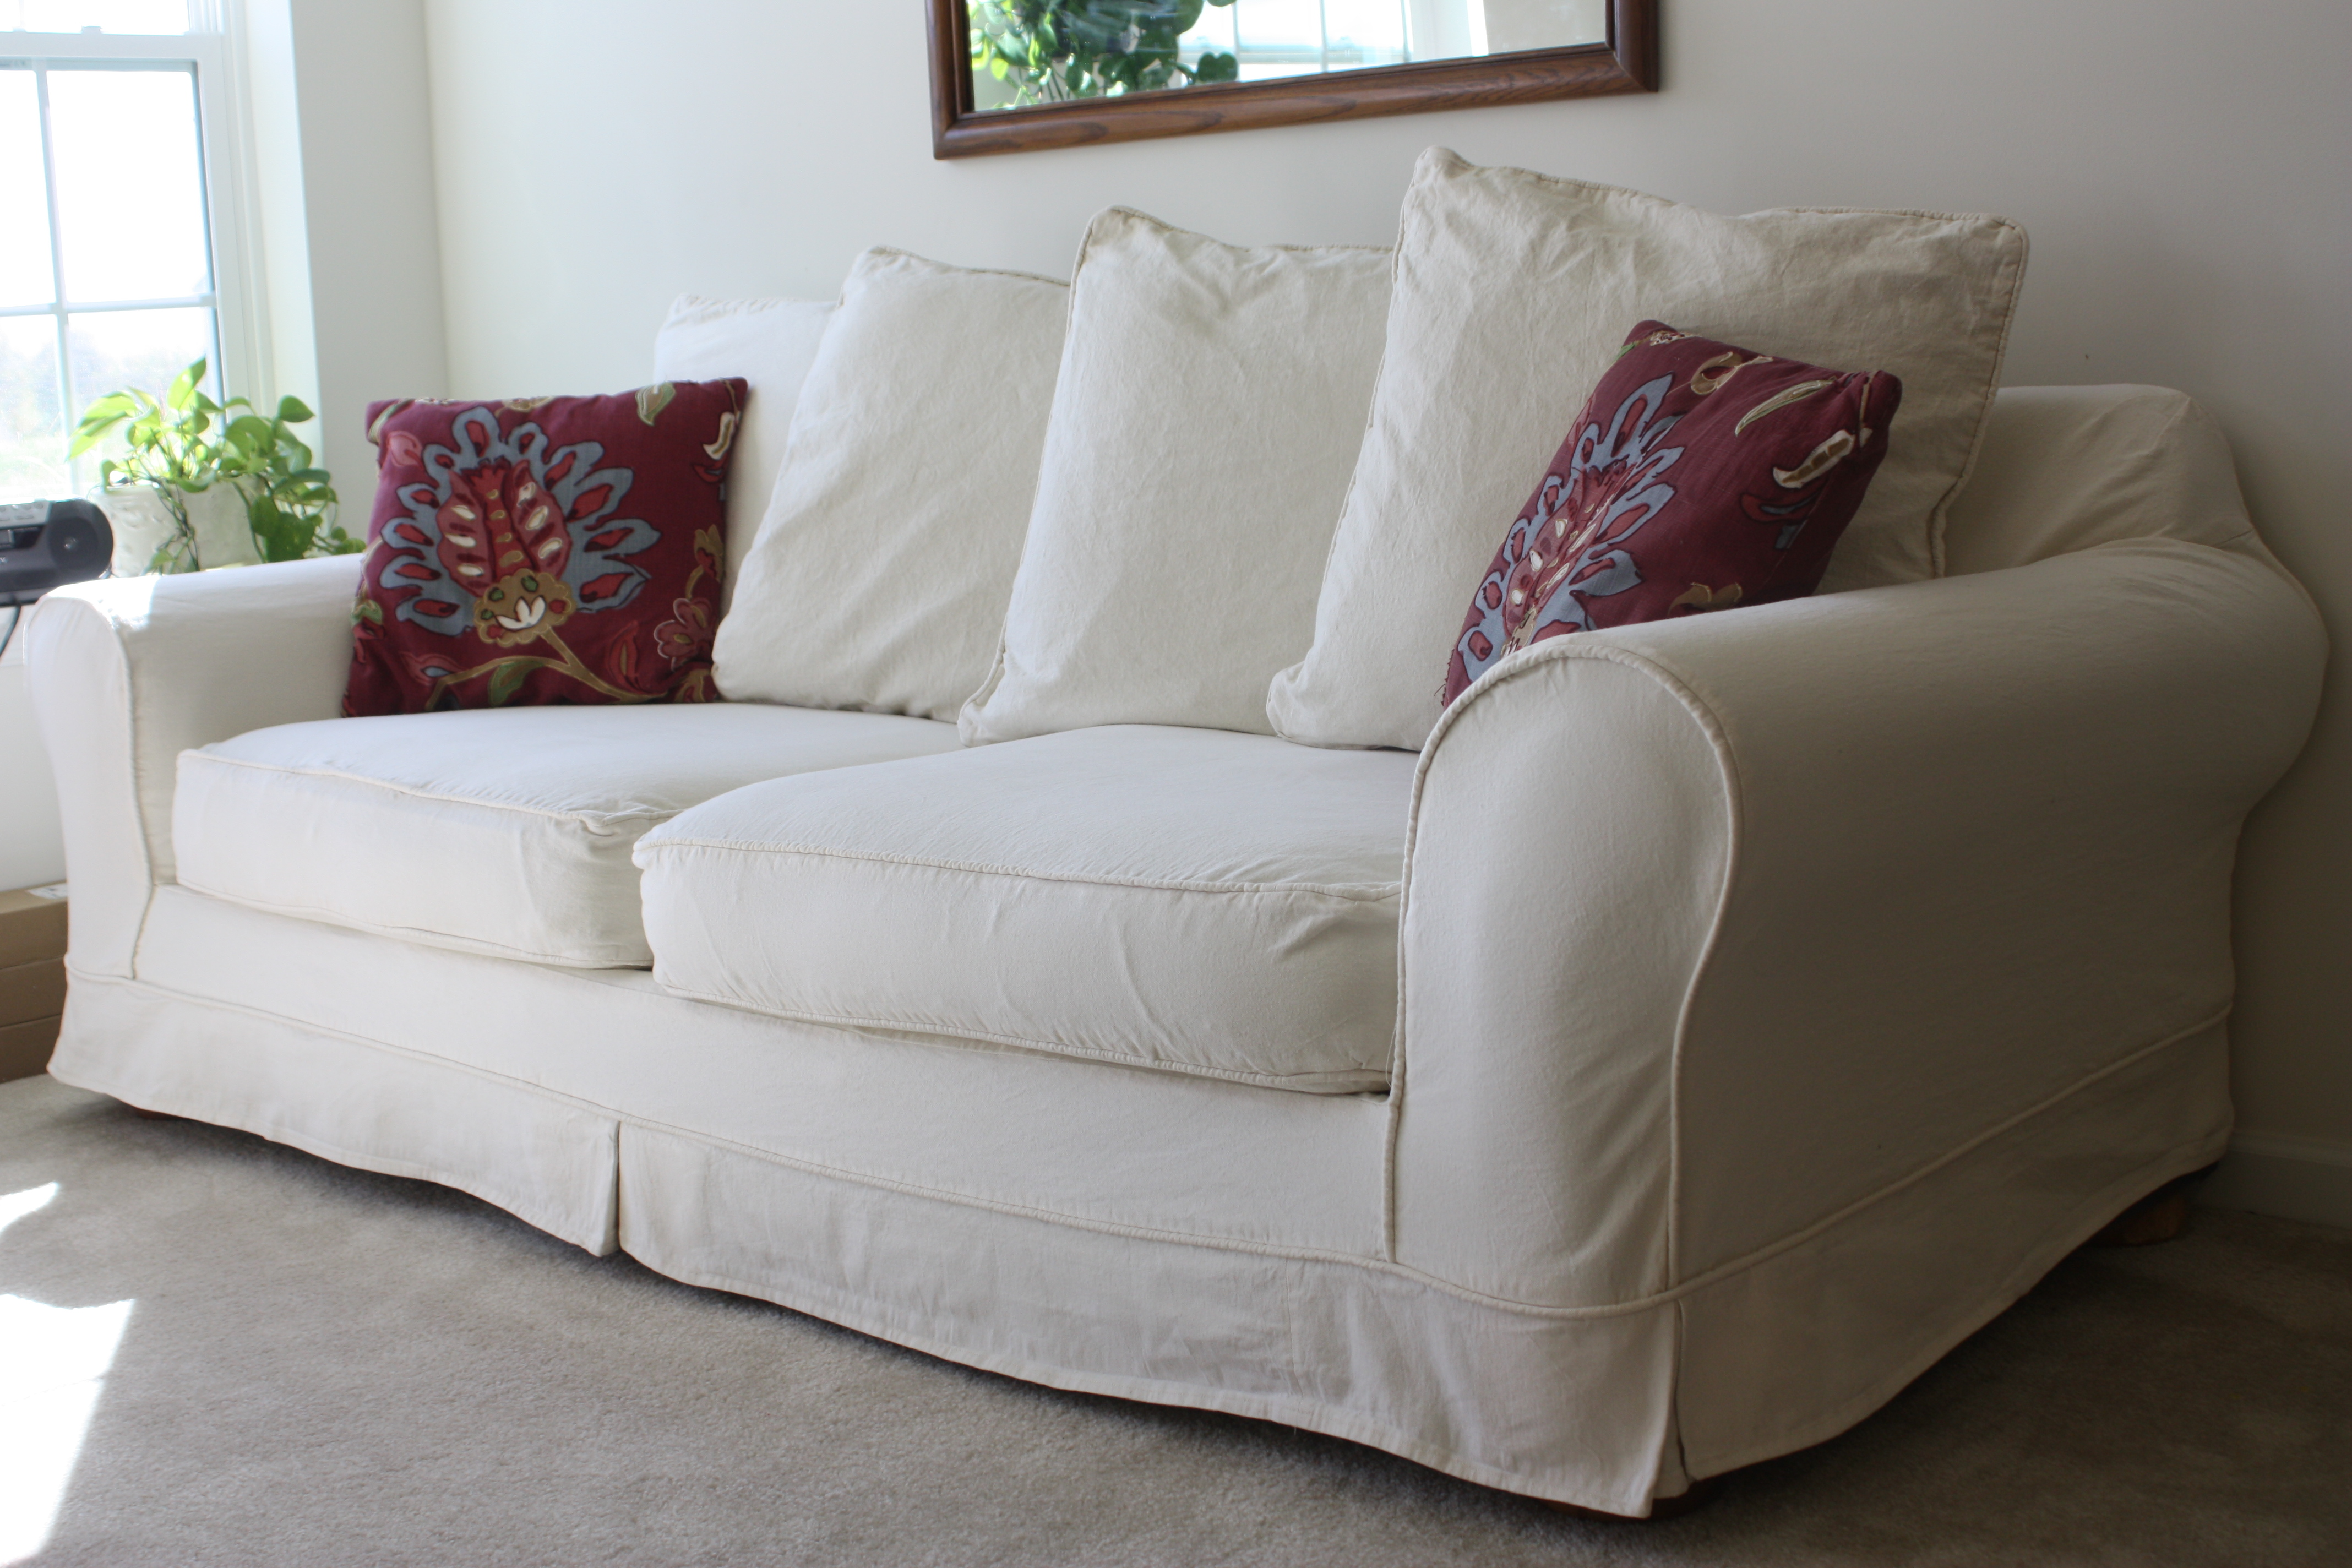 white loveseat sofa and sofa pillows